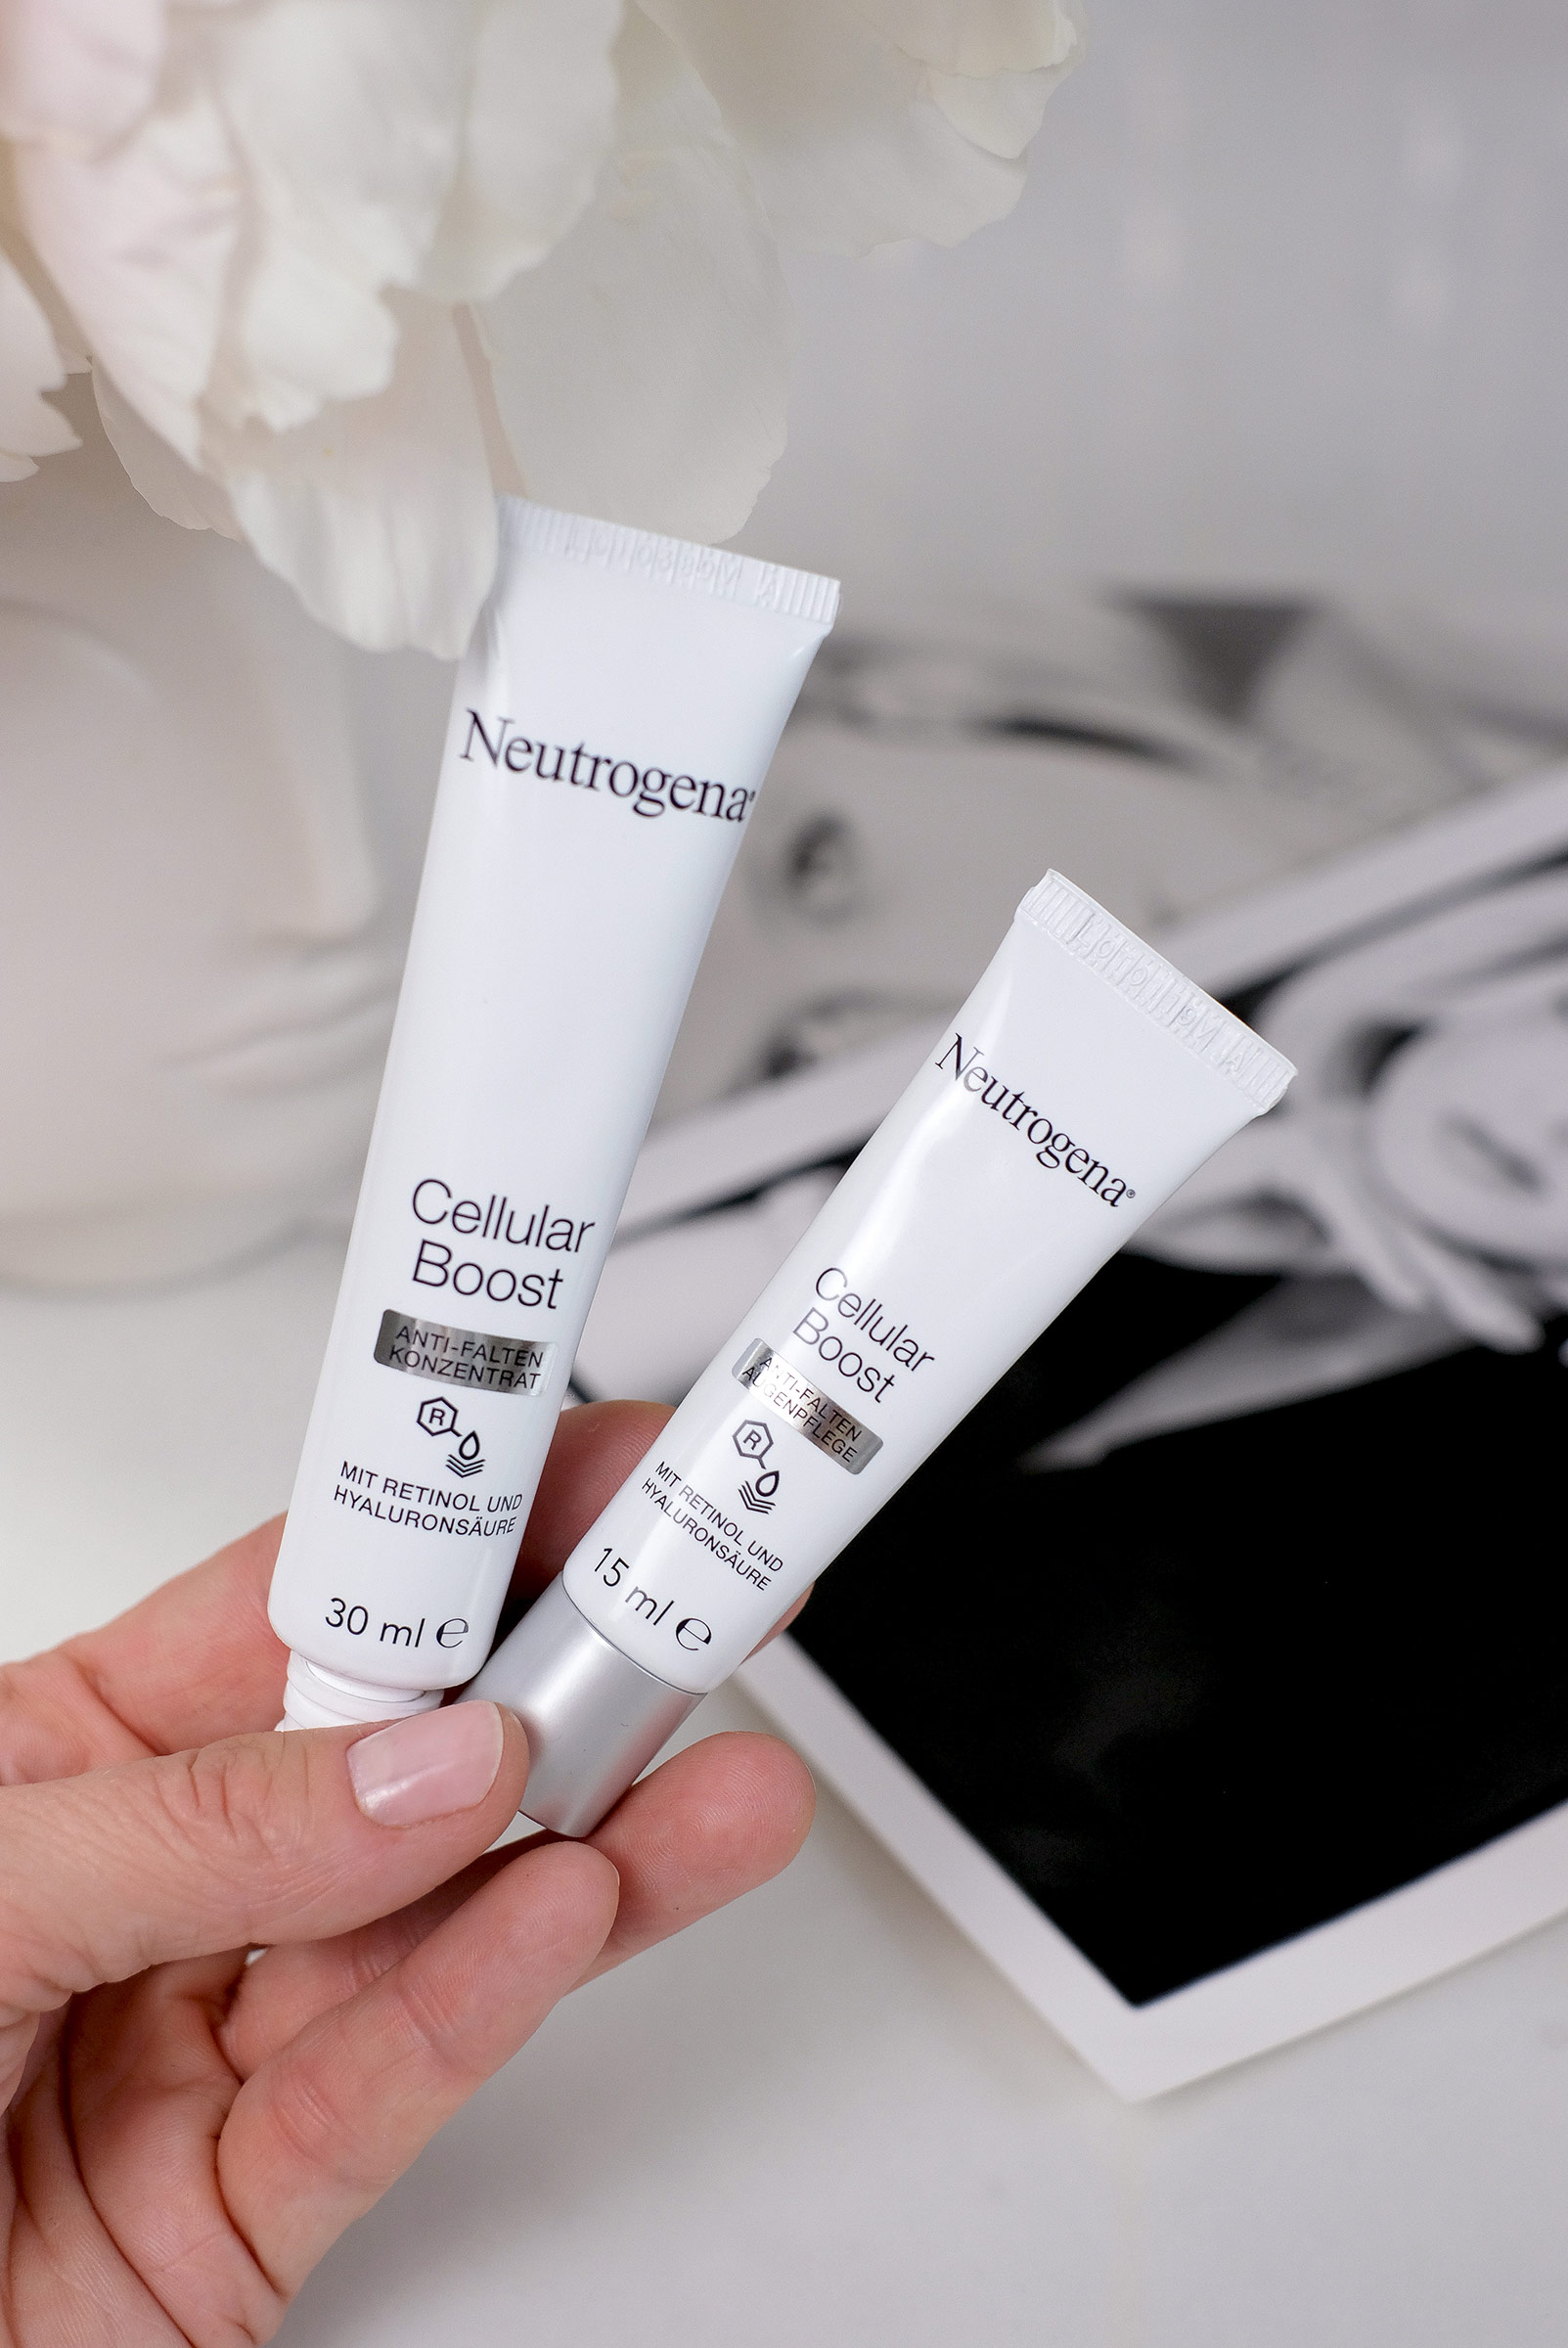 neutrogena, cellular boost, product, skincare, holded by a hand